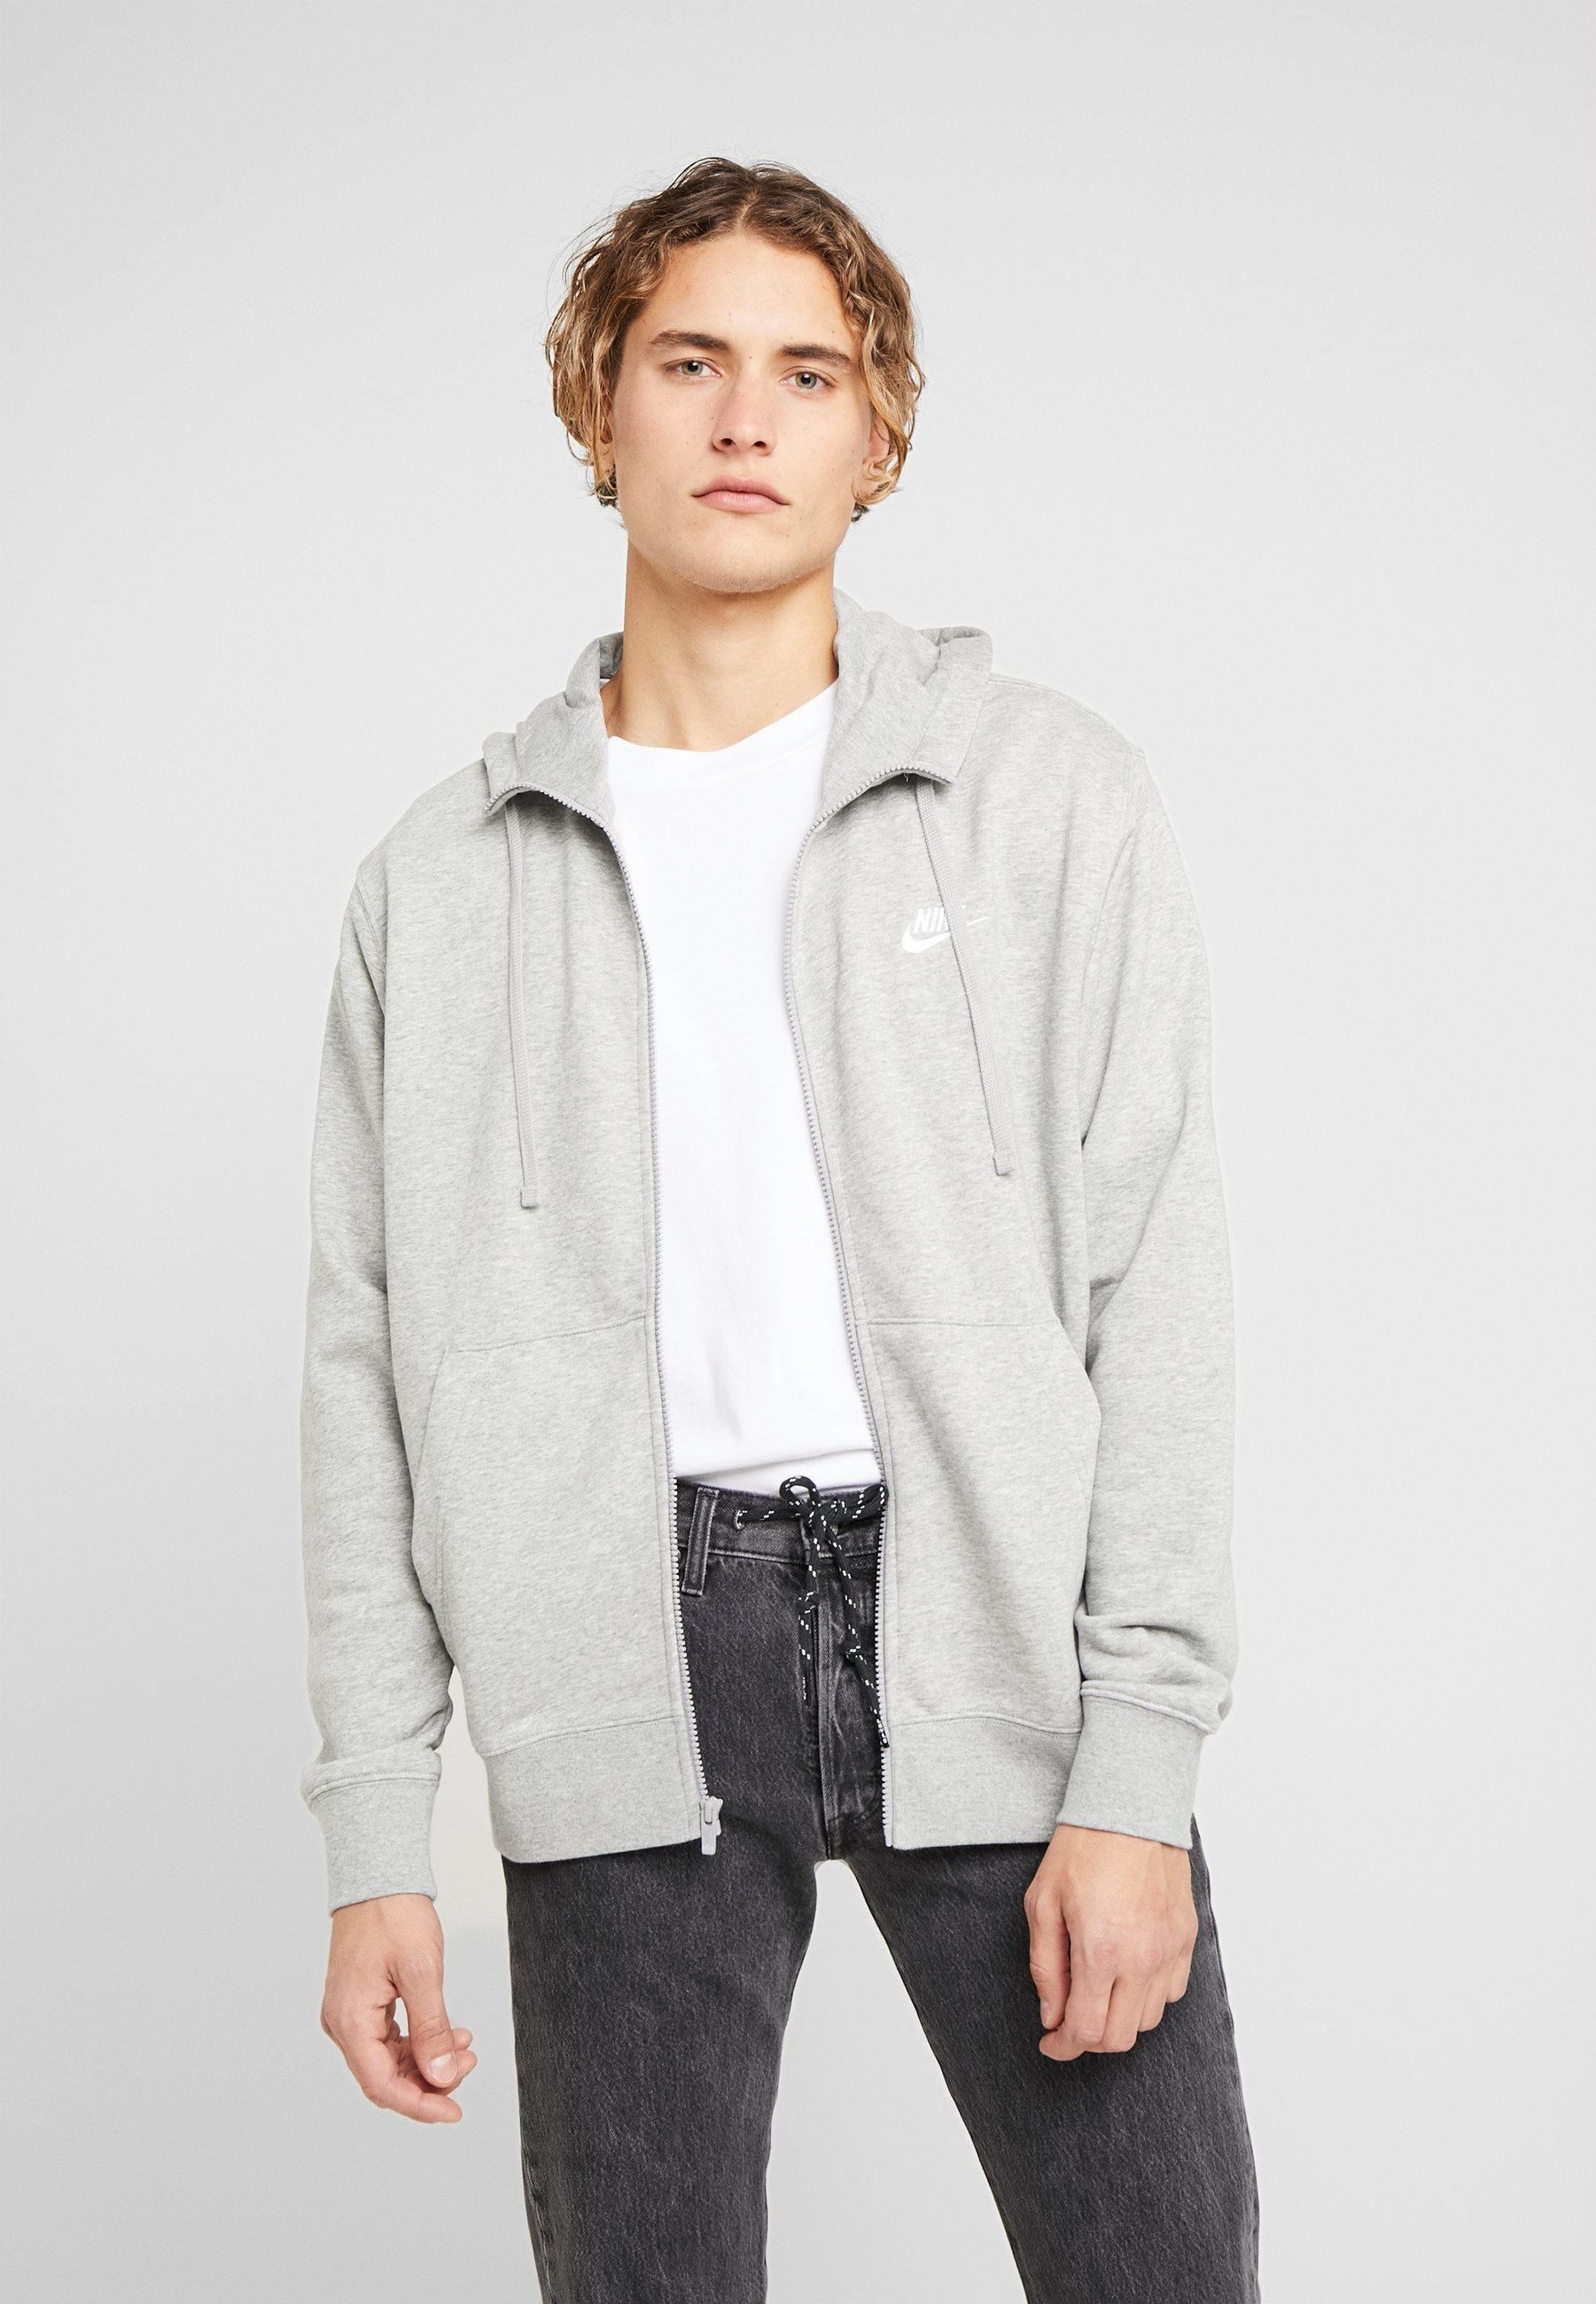 HoodieVeste matte white Club Nike Sweat Zippée Heather Silver Grey Sportswear En LzqSMpGjUV